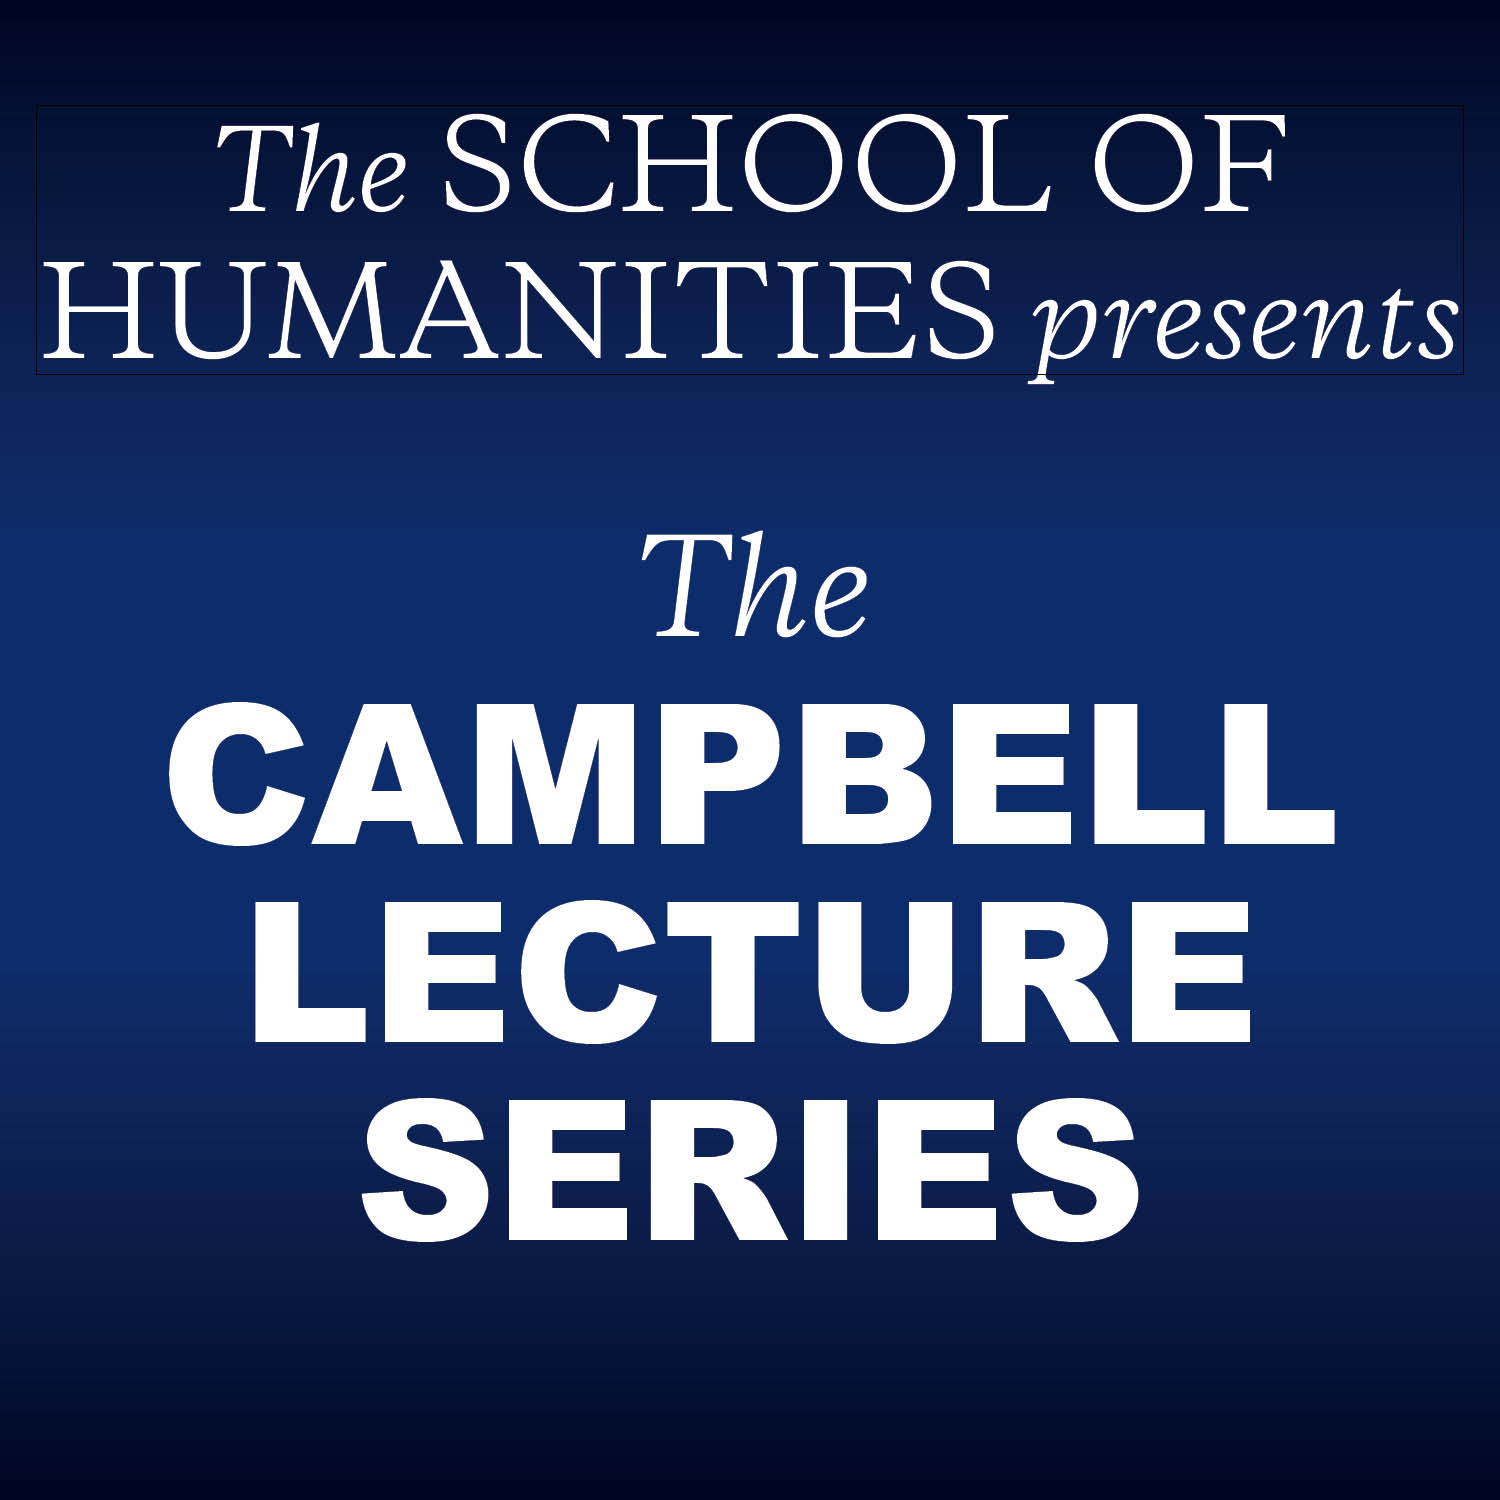 Image of Campbell Lecture Series visual element